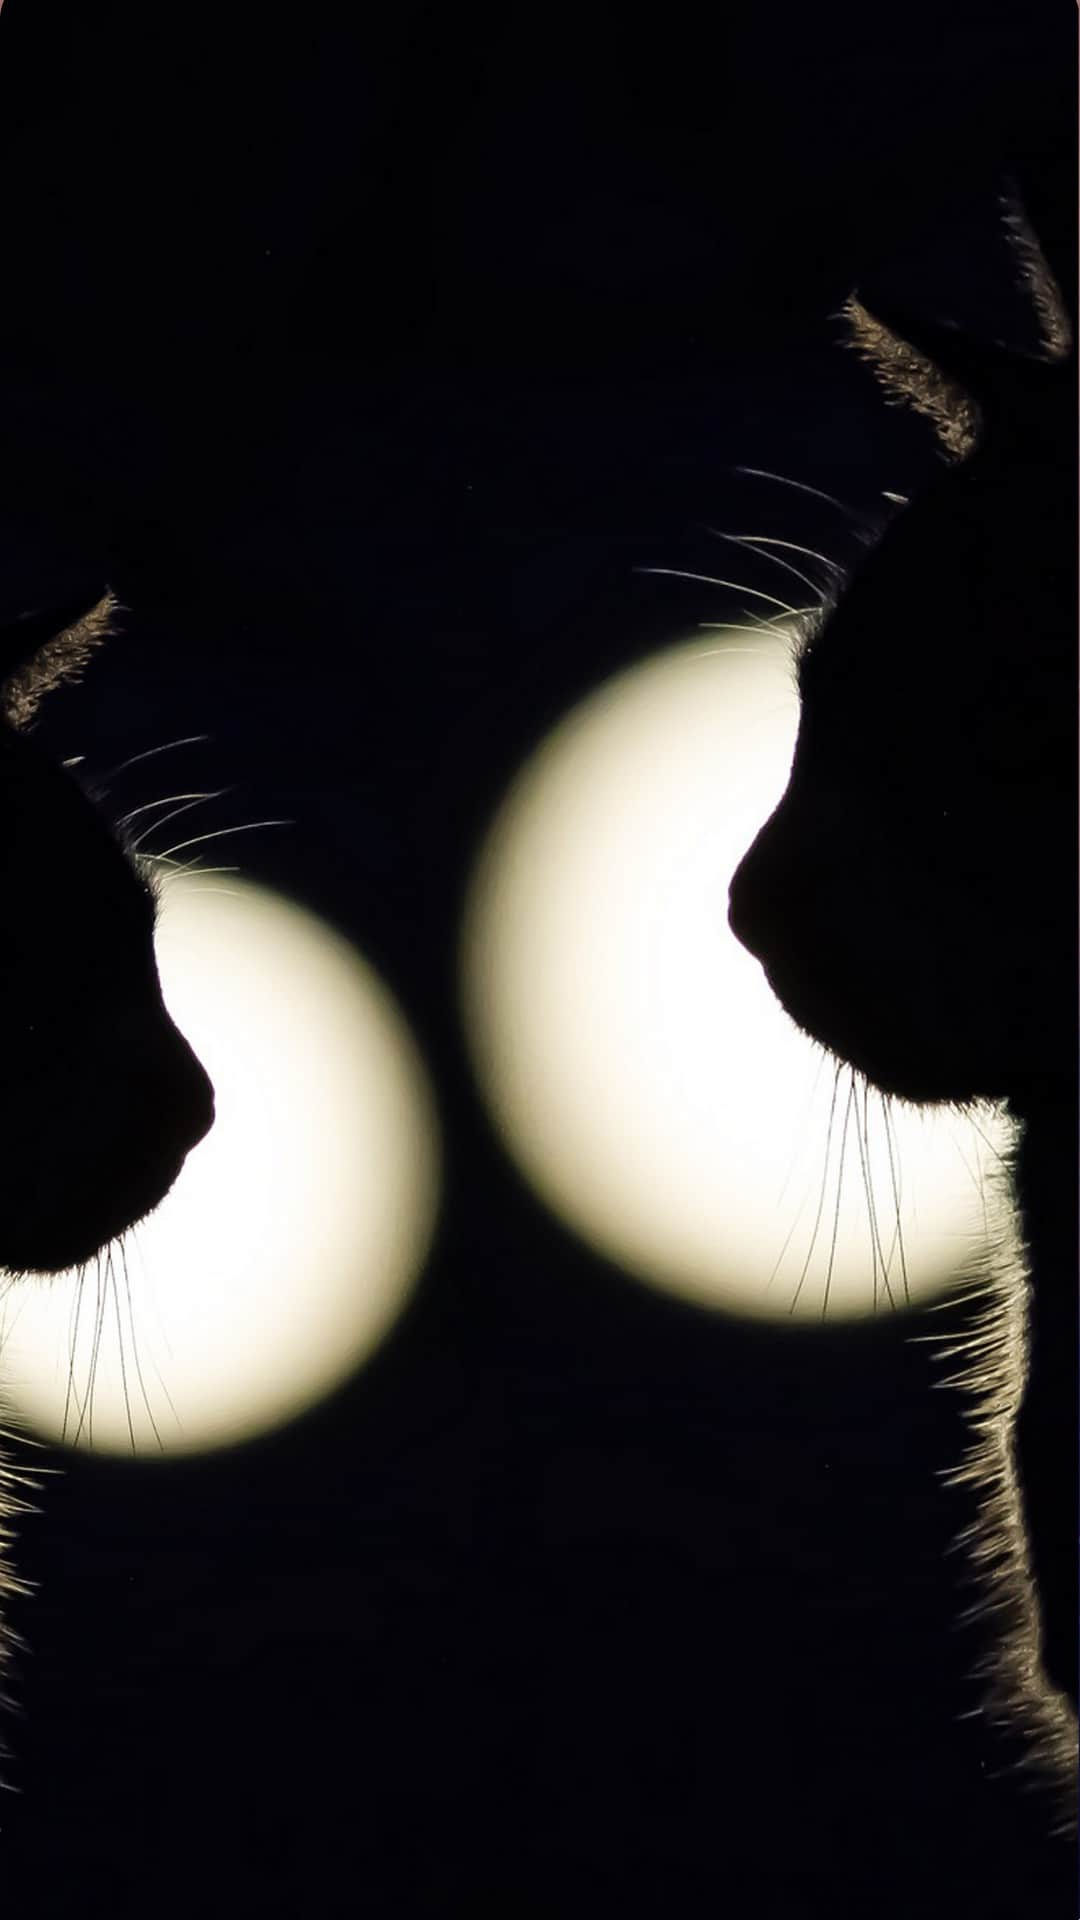 Black Cats Wallpaper iPhone Aesthetic Zoom Background